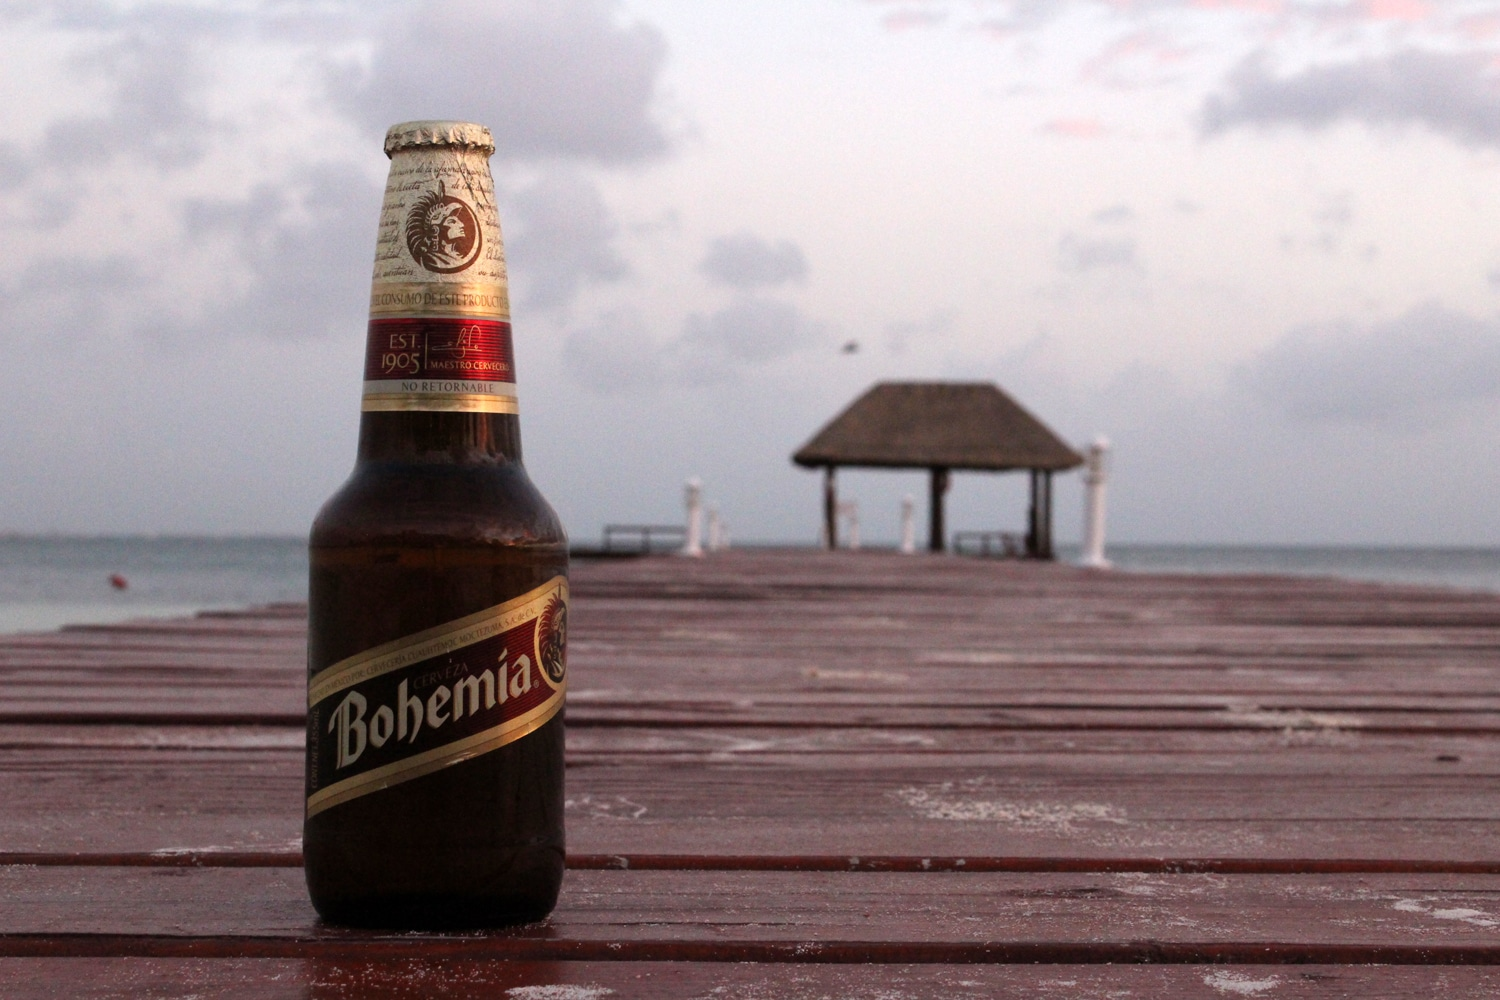 Enjoy Bohemia Beer when in Mexico.